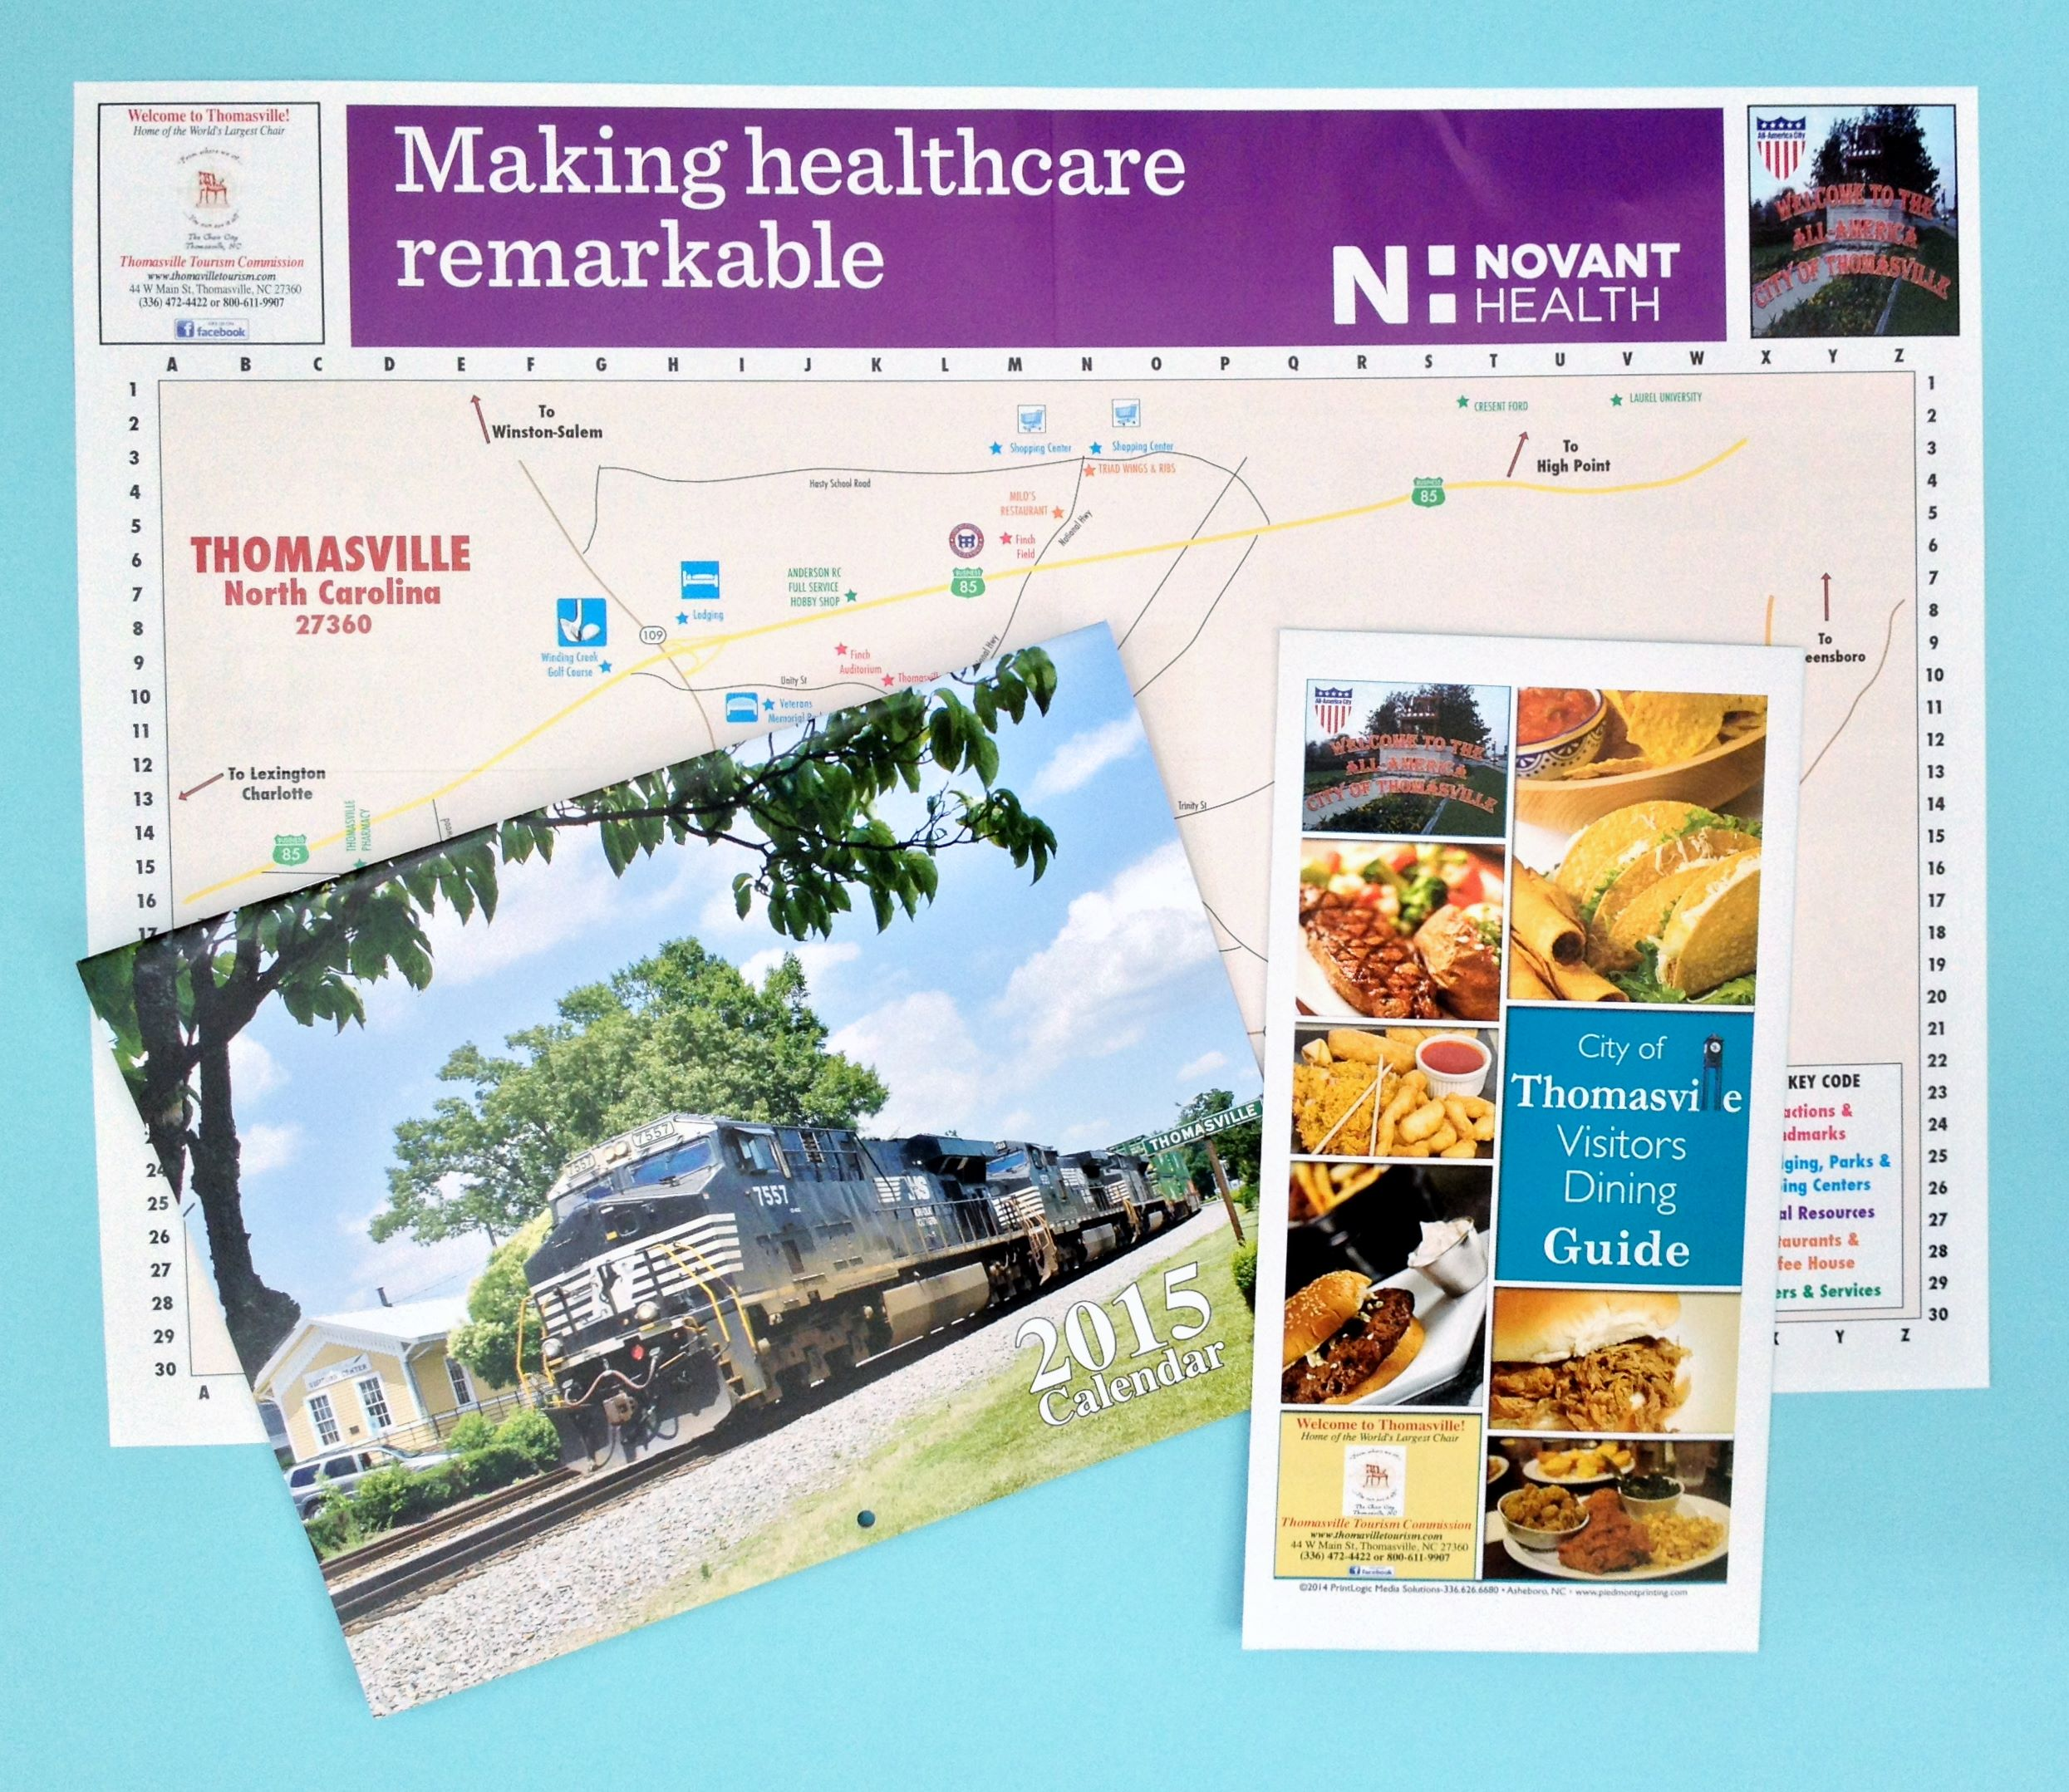 PrintLogic | Novanth Health Thomasville Medical center